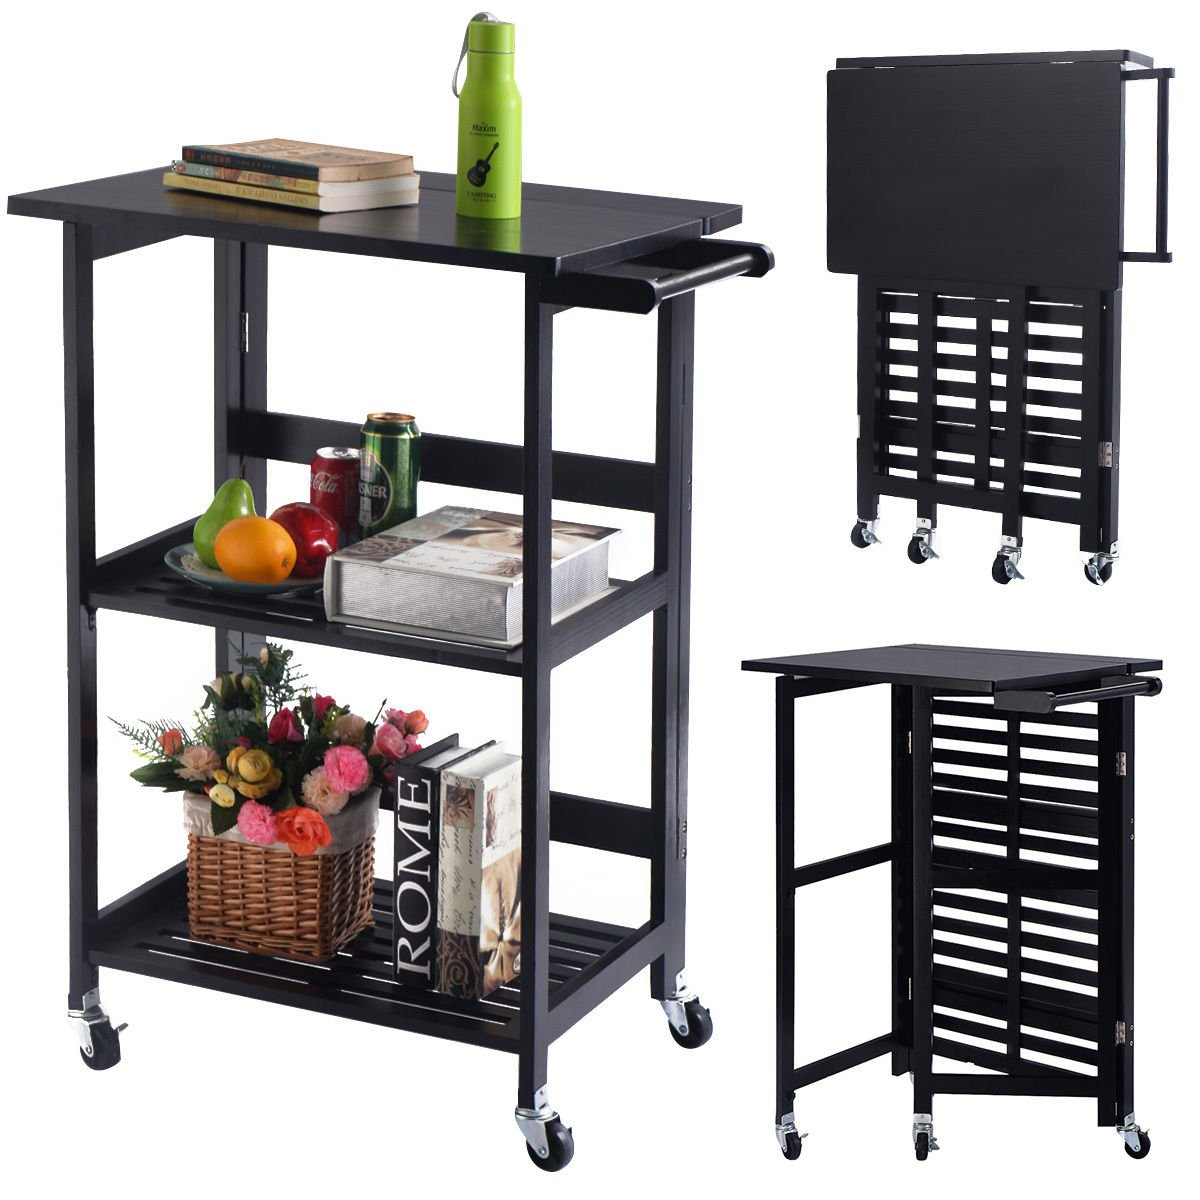 PROSPERLY U.S. Product Foldable Wood Kitchen Cart Utility Serving Rolling Cart w/Casters Black New